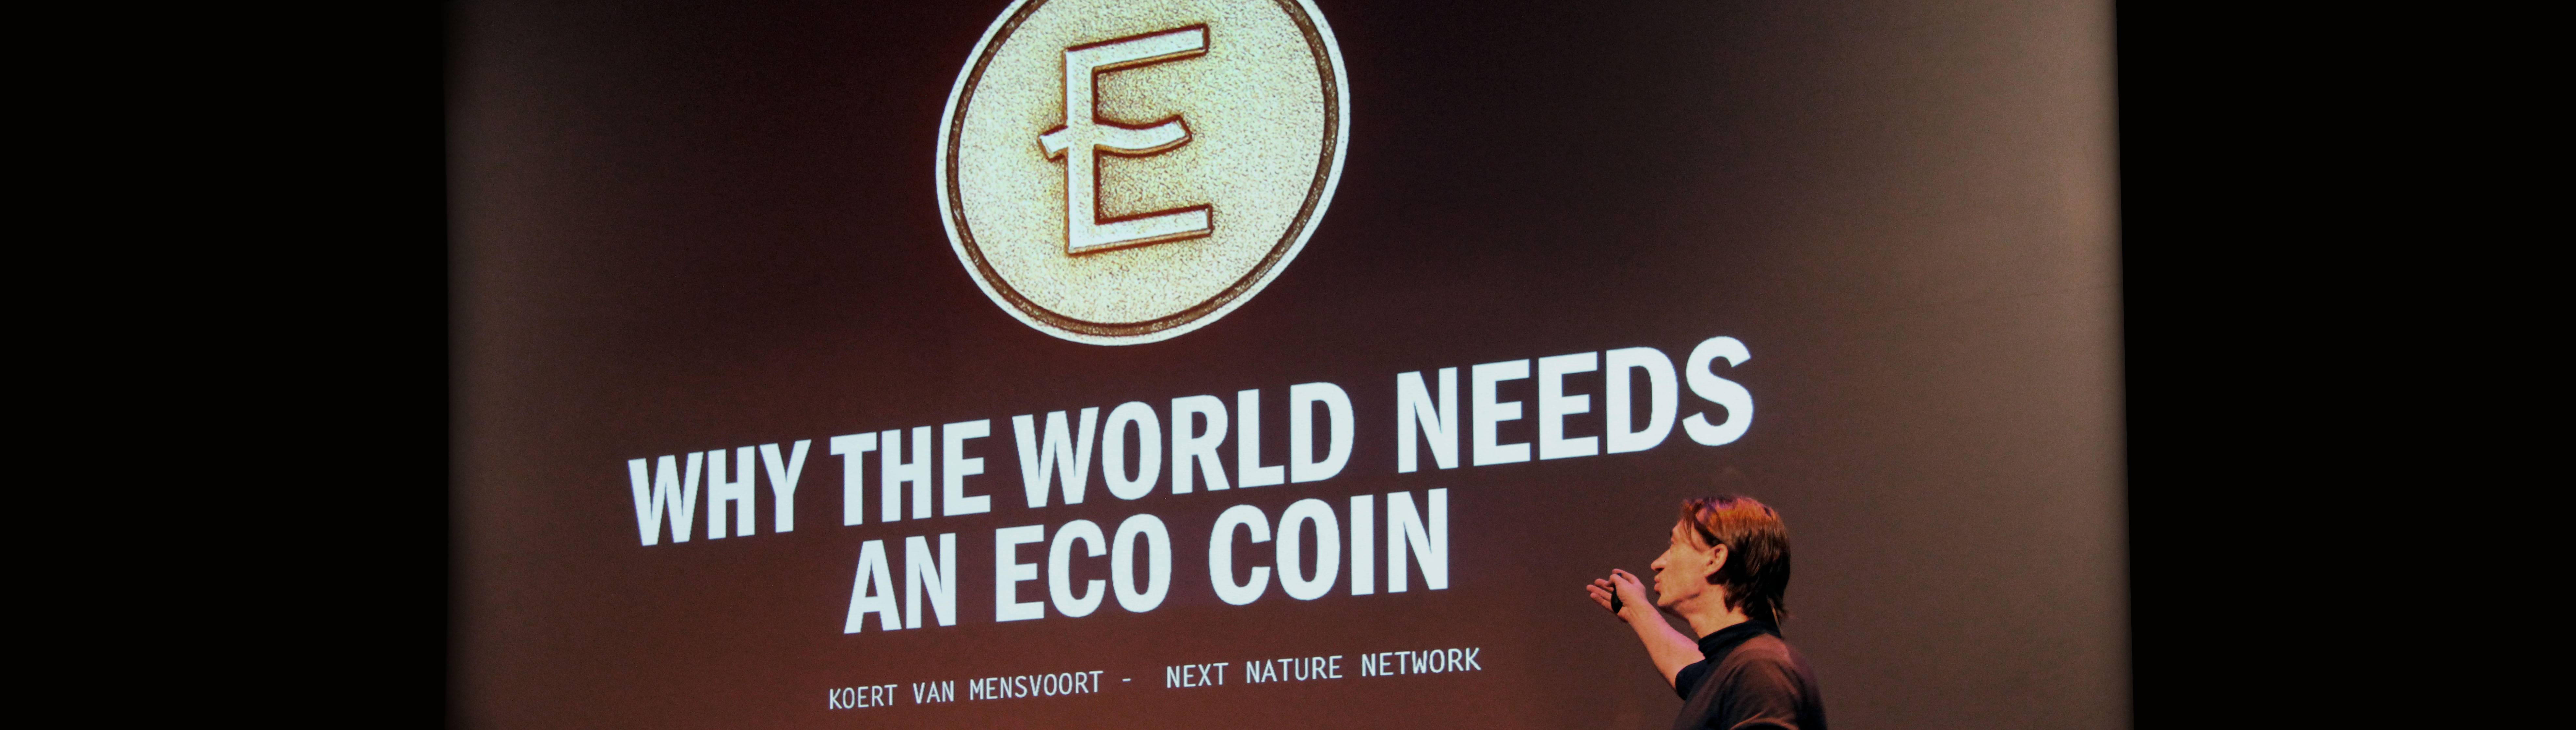 Visual of How to Integrate ECO Coins into Society? Four Eco Dreams in Four Scenarios